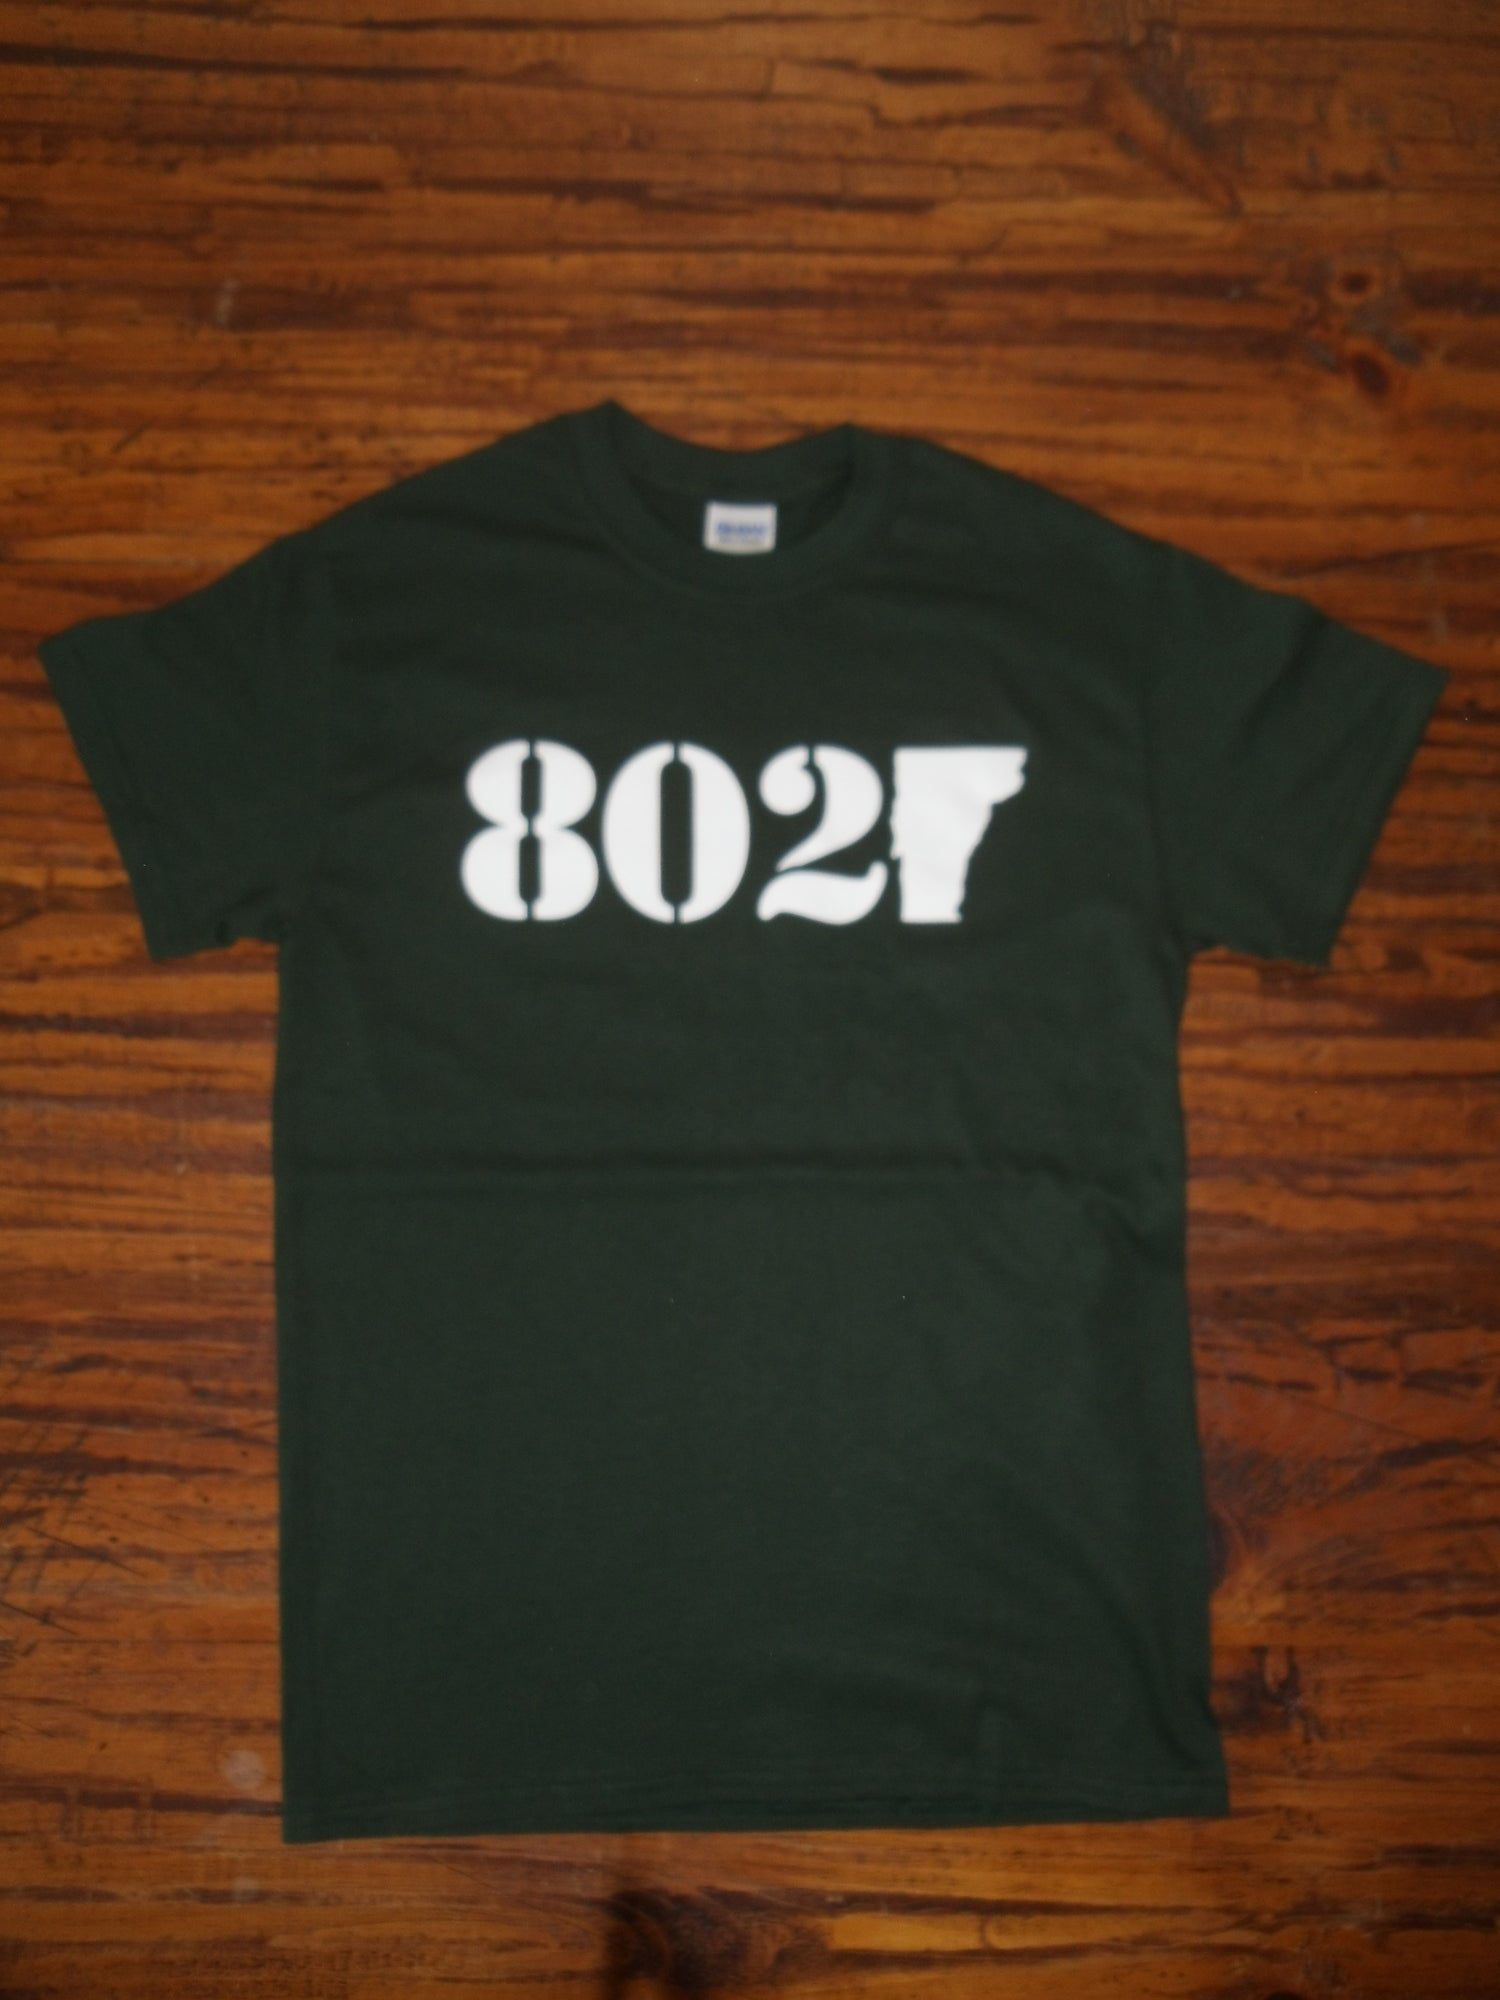 Image of 802 Vermont Classic T-Shirt - White on Forest Green - Toddler, Kids Youth & Adult (Men's & Women's)